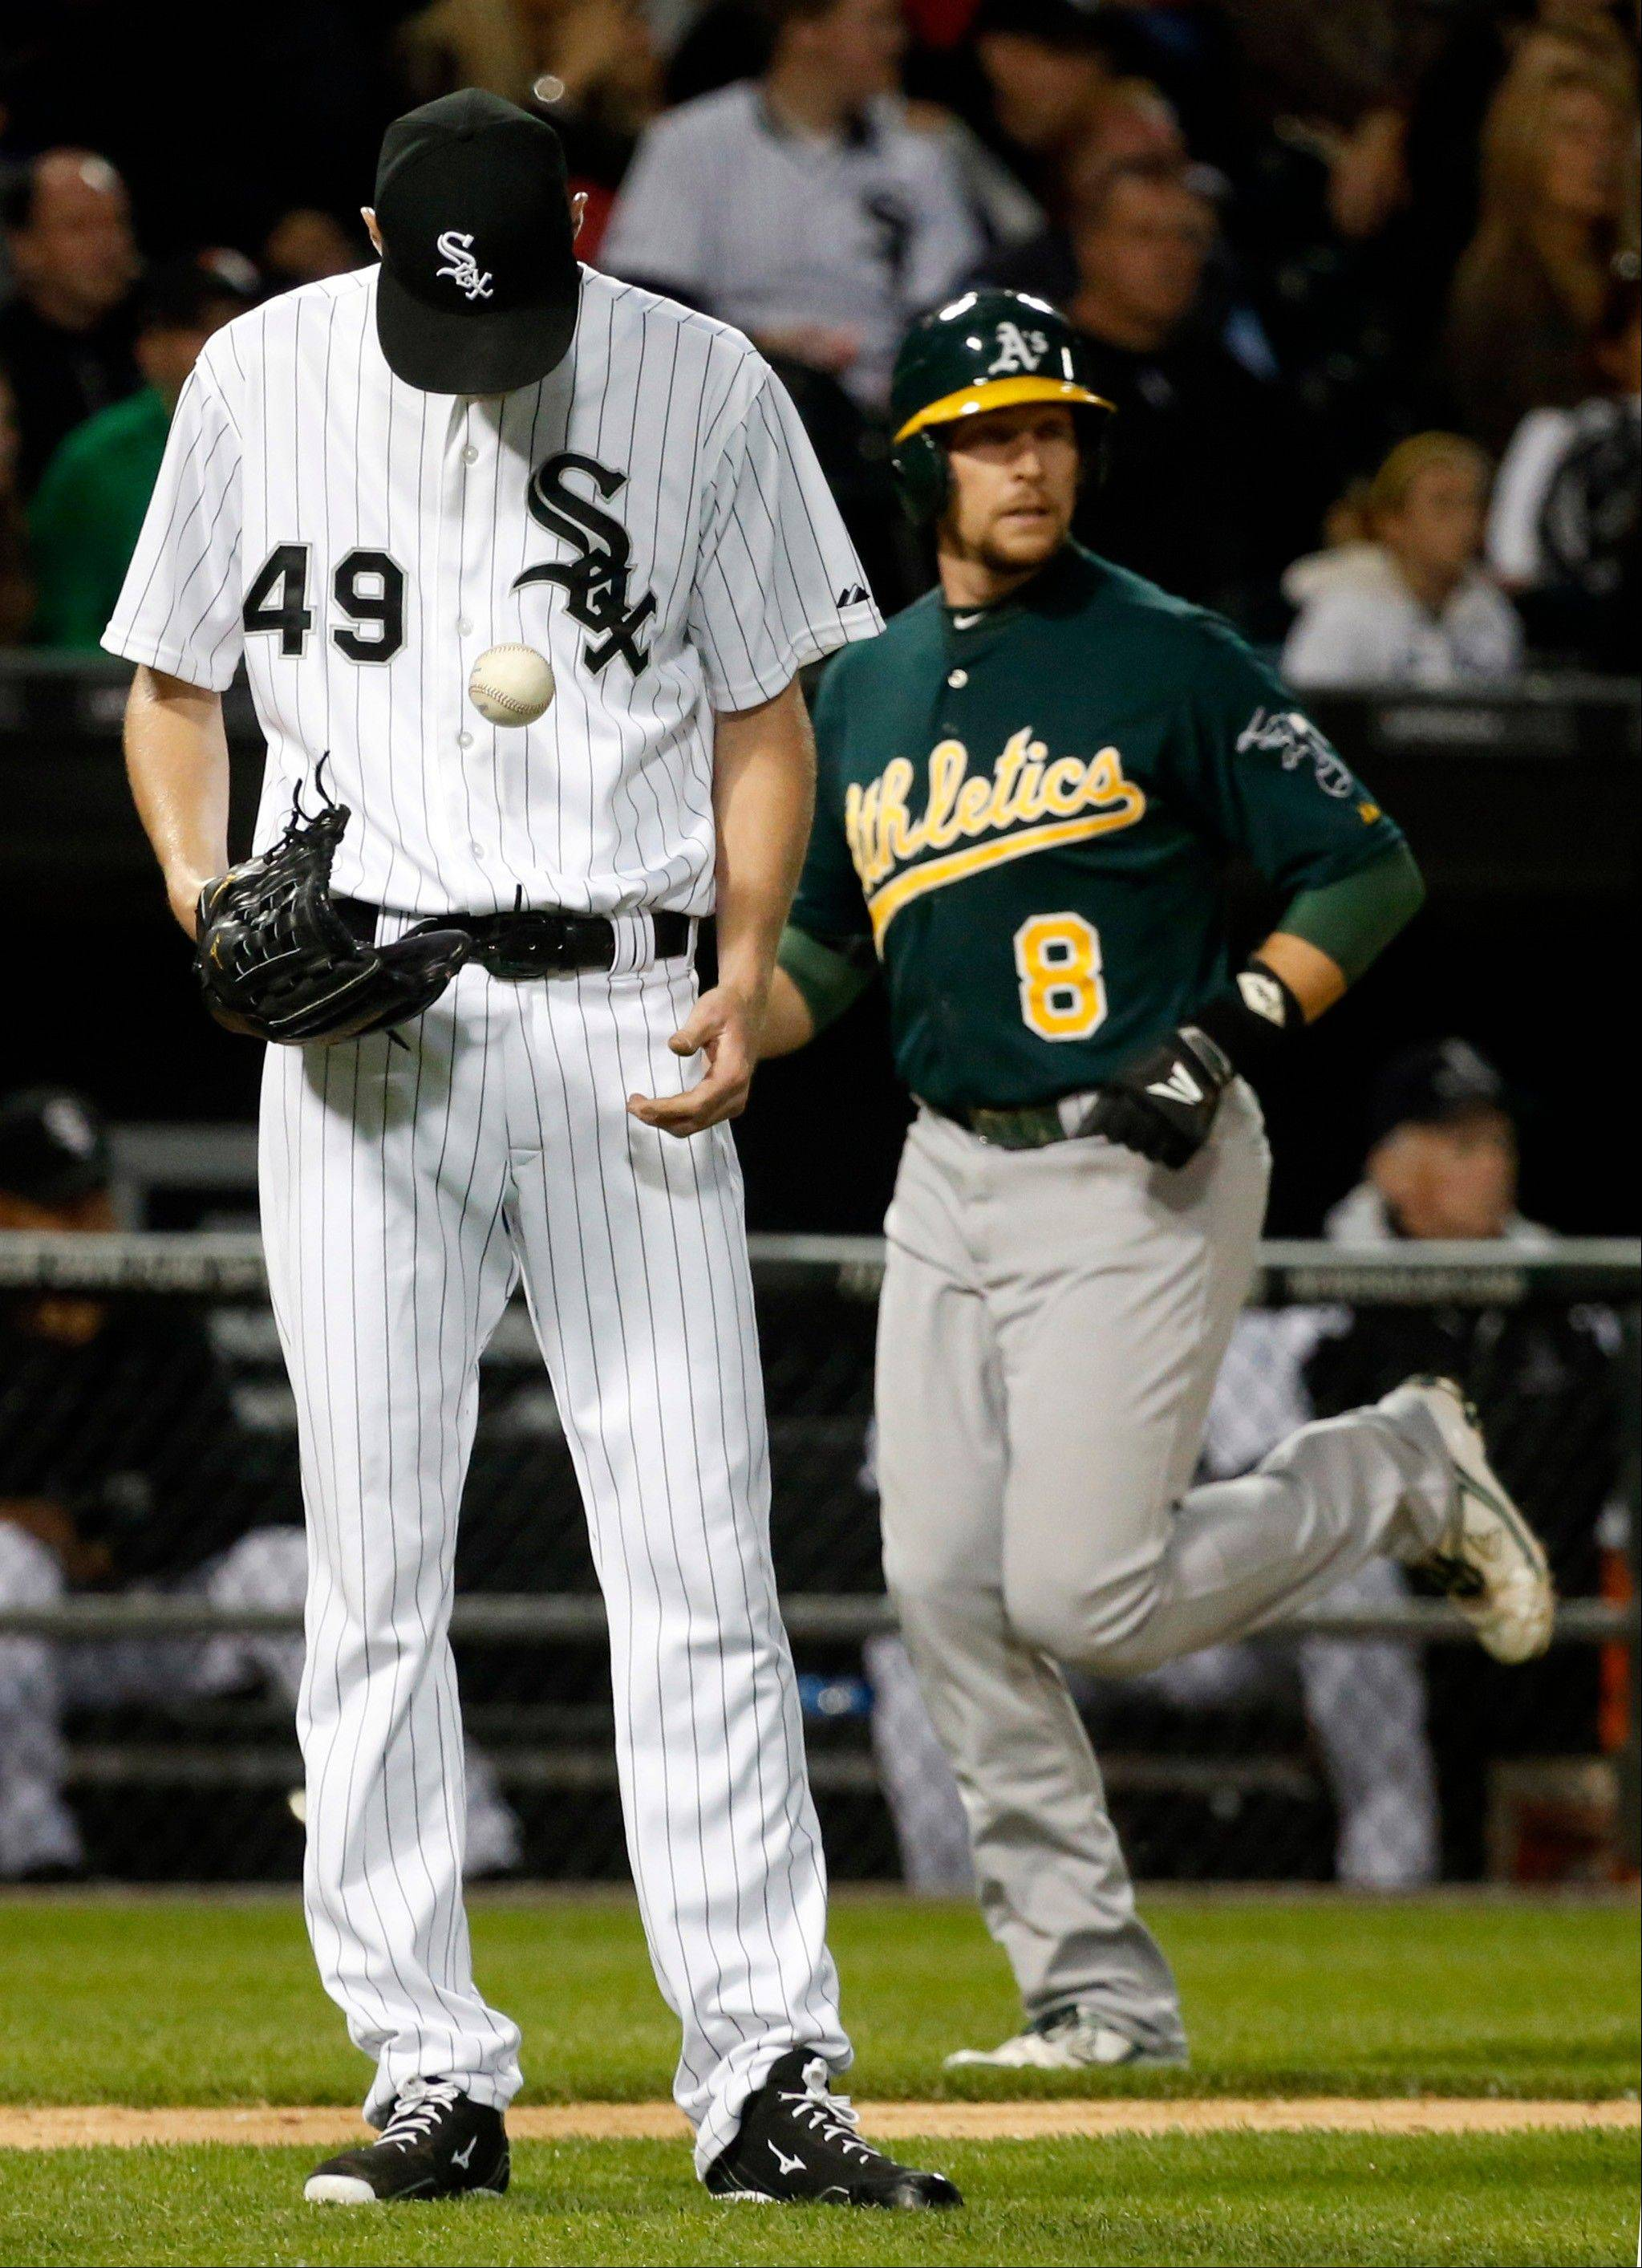 White Sox starter Chris Sale reacts after giving up a grand slam to the Athletics' Josh Donaldson as Jed Lowrie rounds third during the sixth inning Friday at U.S. Cellular Field.